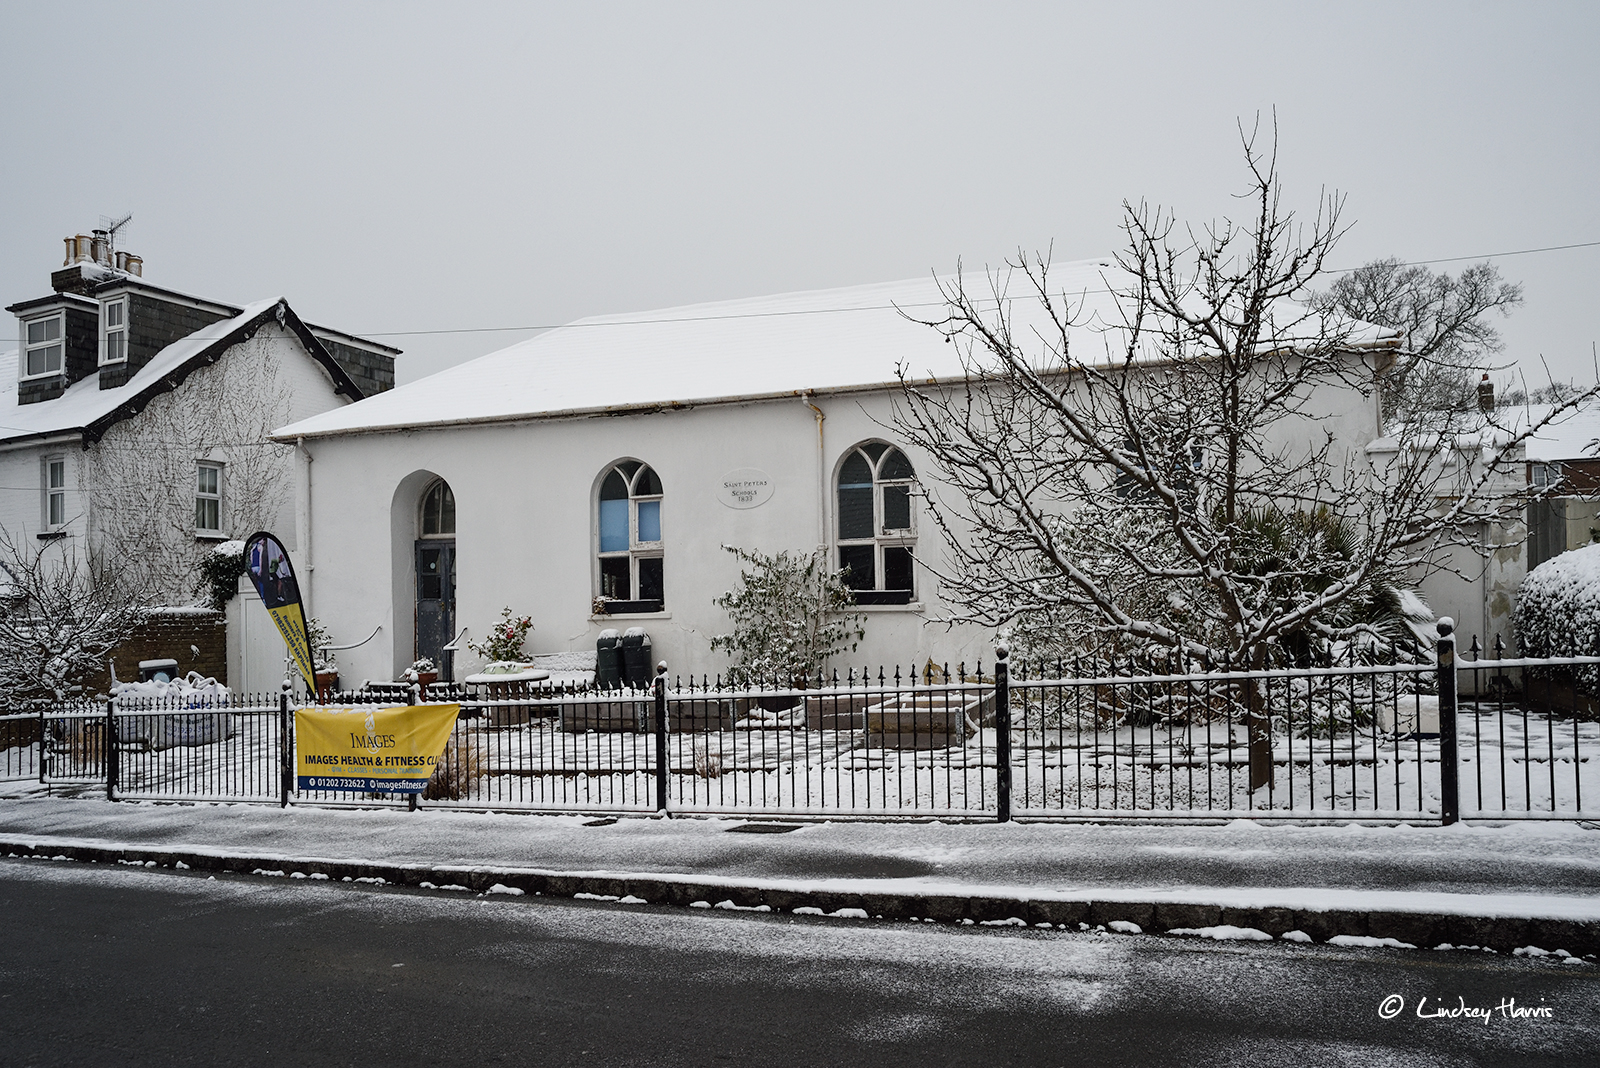 Snow on the old St. Peter's School building, Parr Street, Ashley Cross, Poole, Dorset.